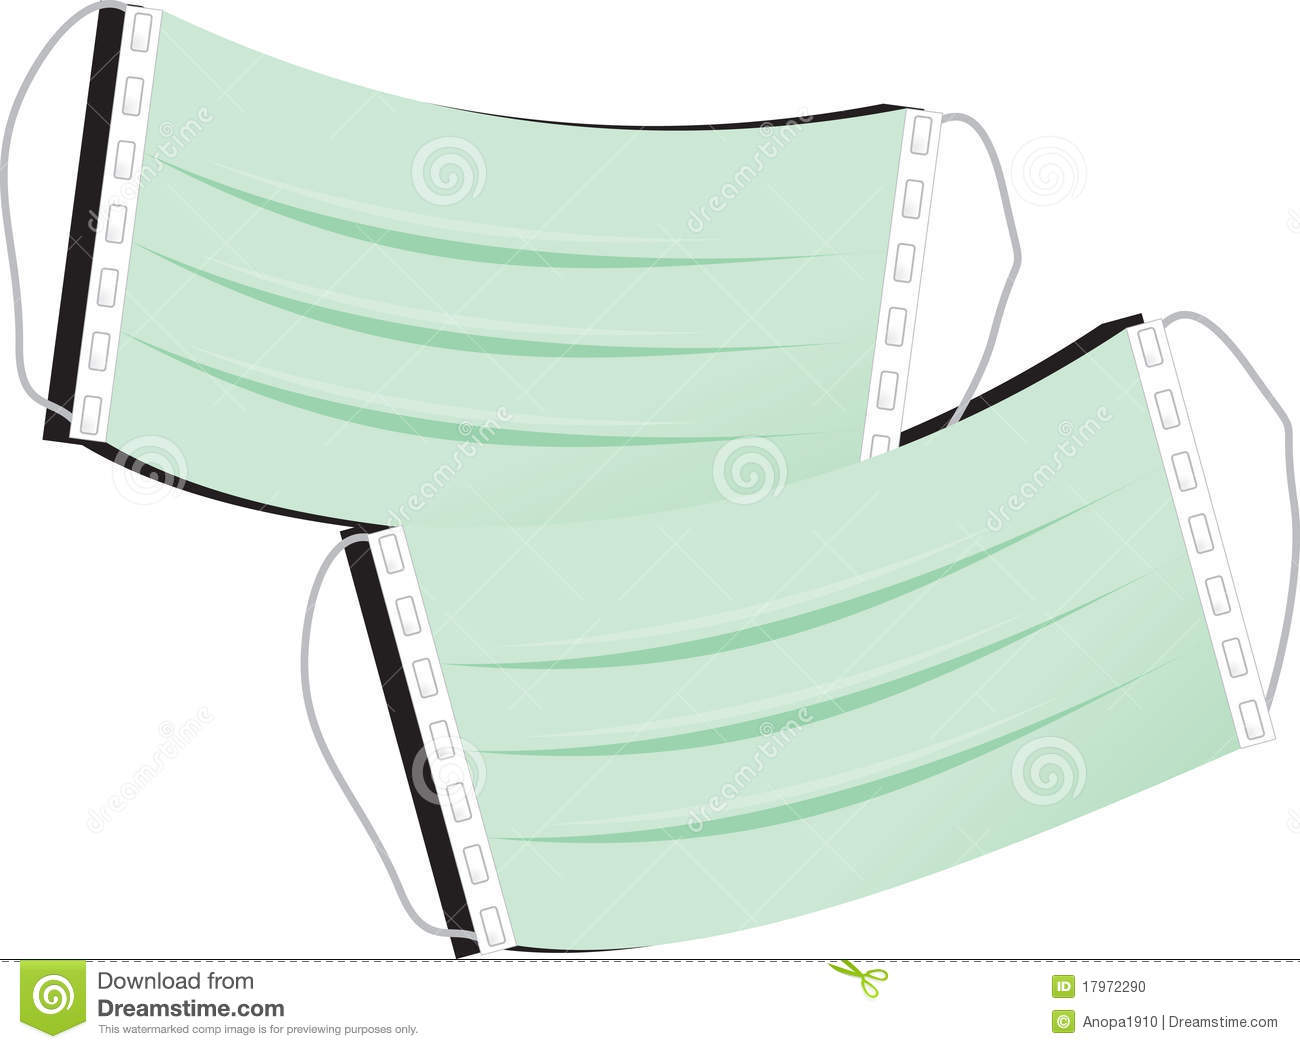 Royalty Free Medical Equipment Clip Art Vector Images